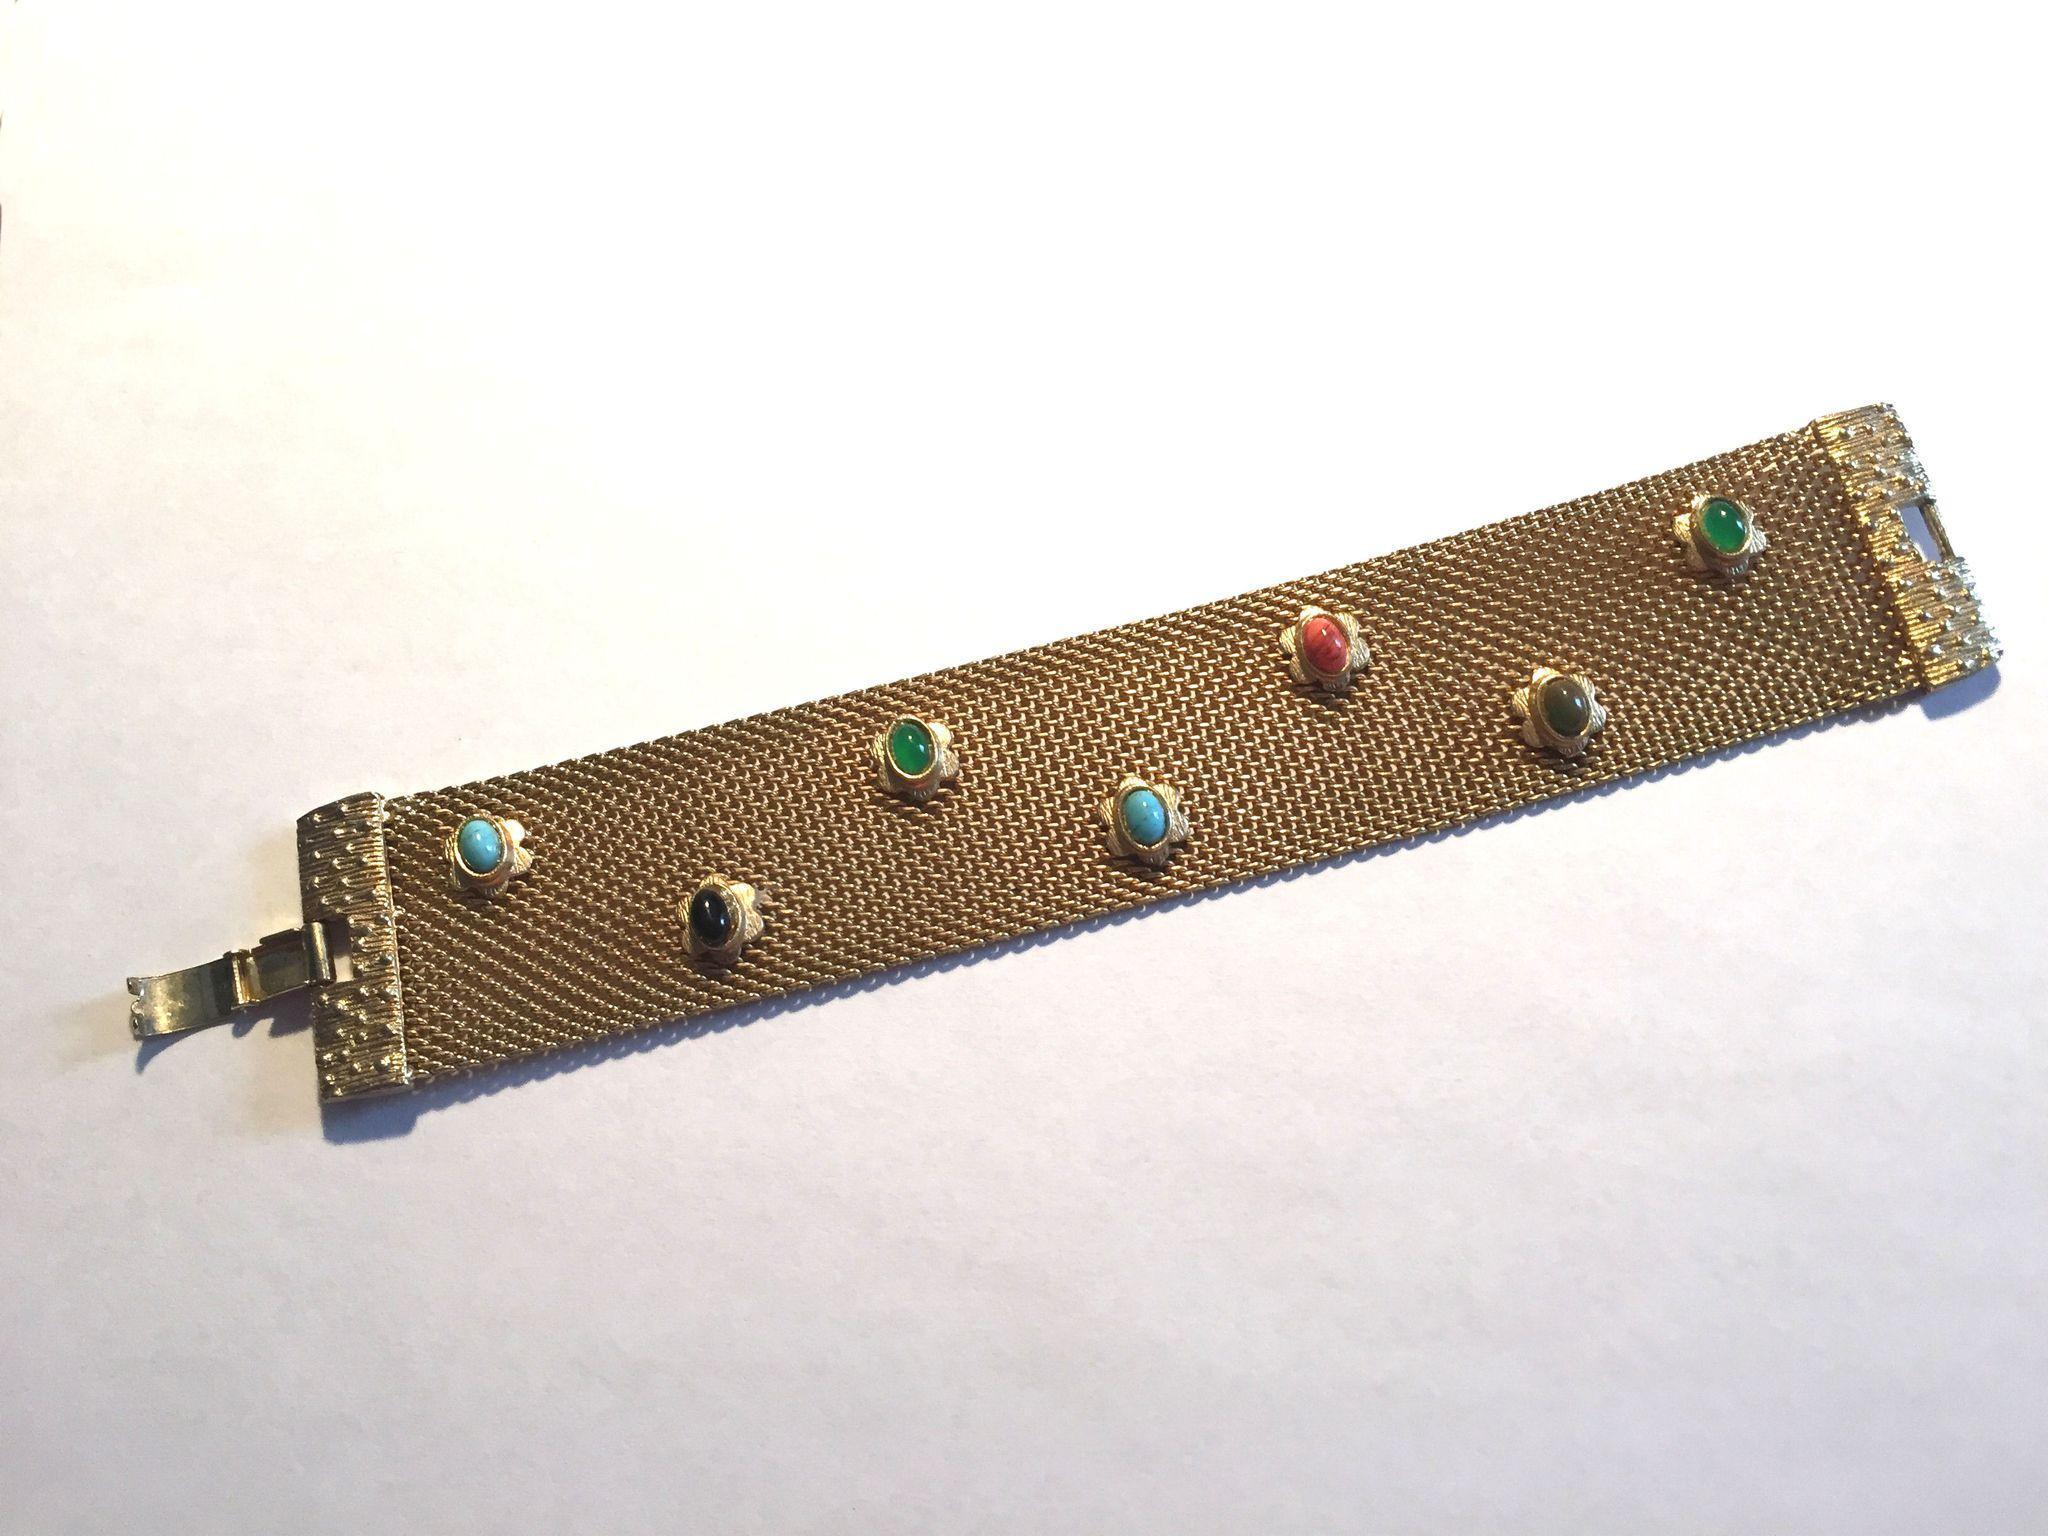 BEAUTIFUL Vintage Mesh Bracelet w/Stones